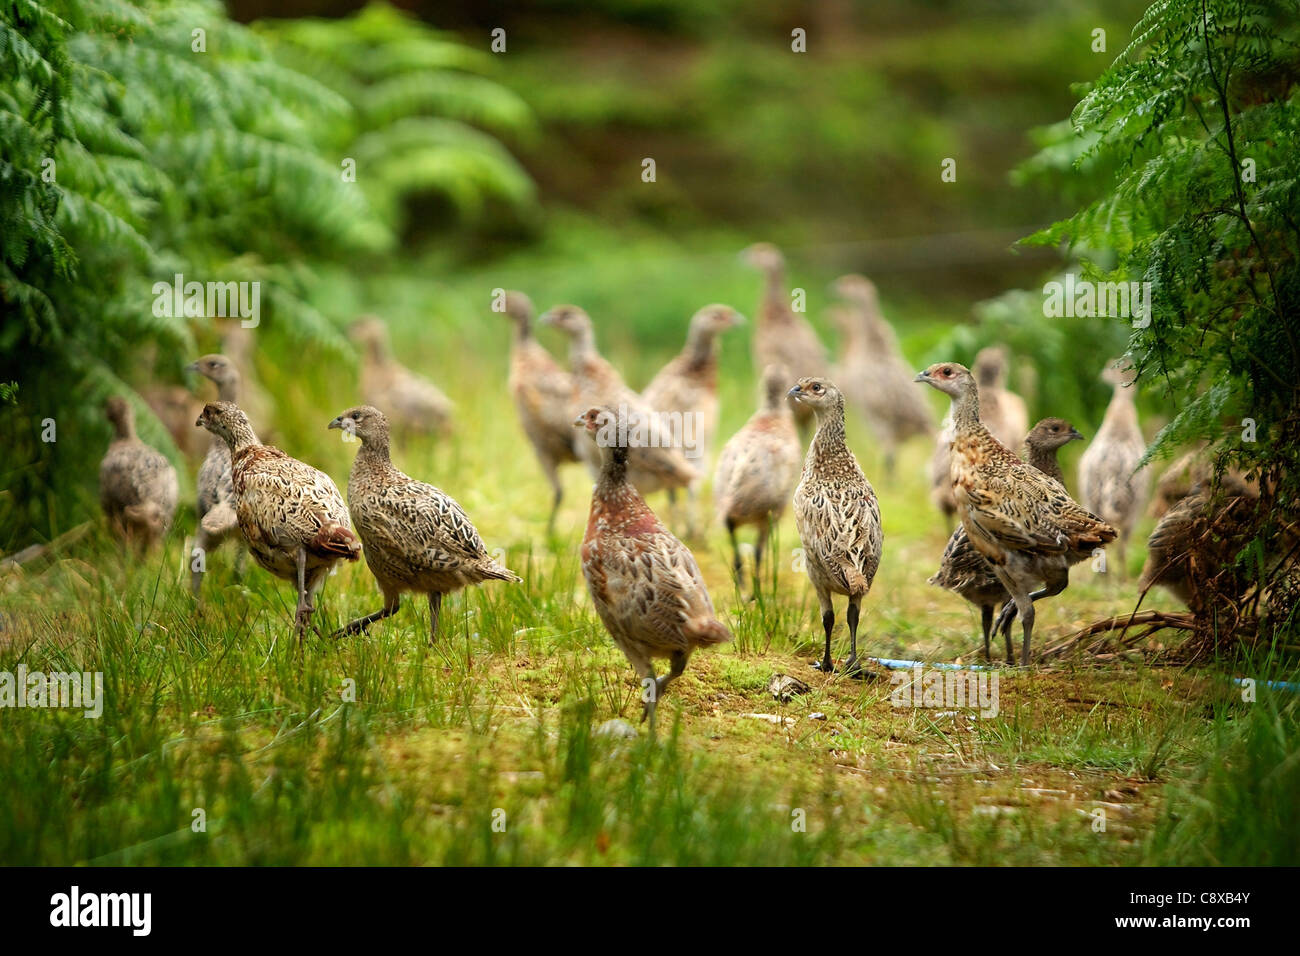 Young pheasant poults being released into pens in summer - Stock Image